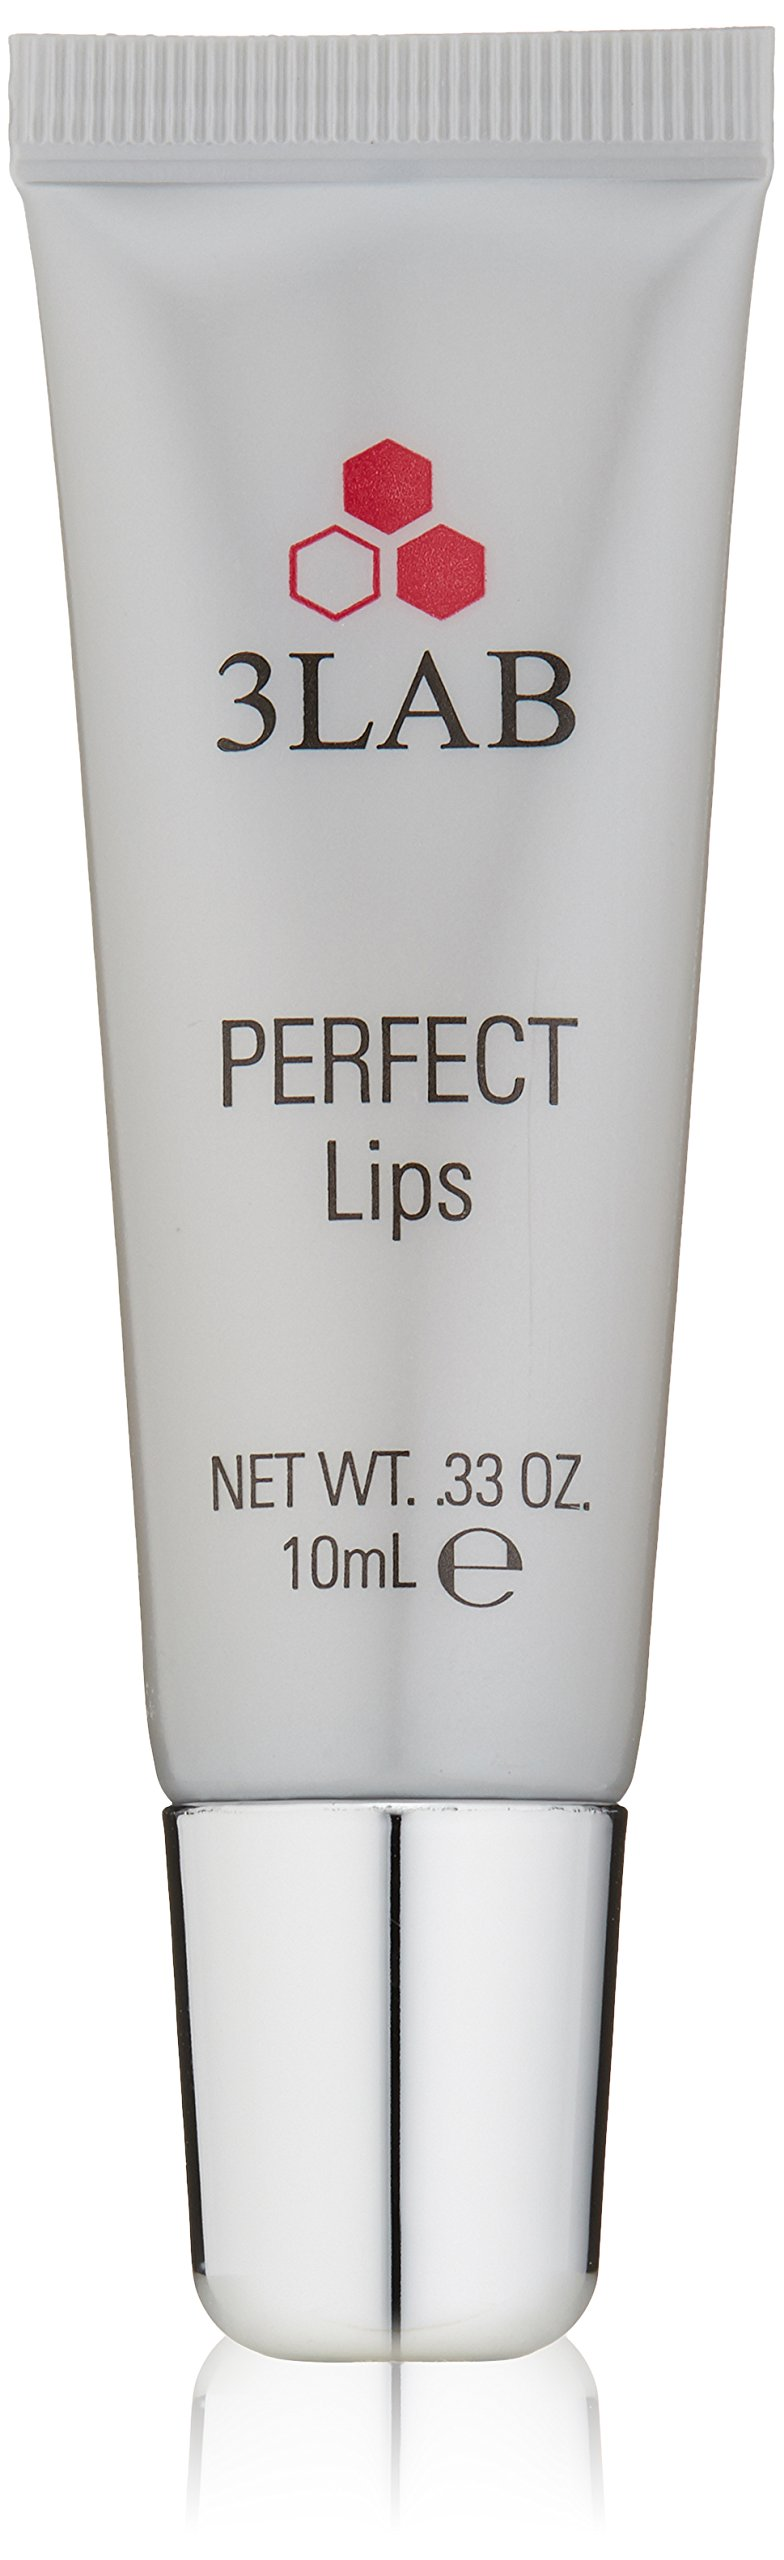 3LAB Perfect Lips